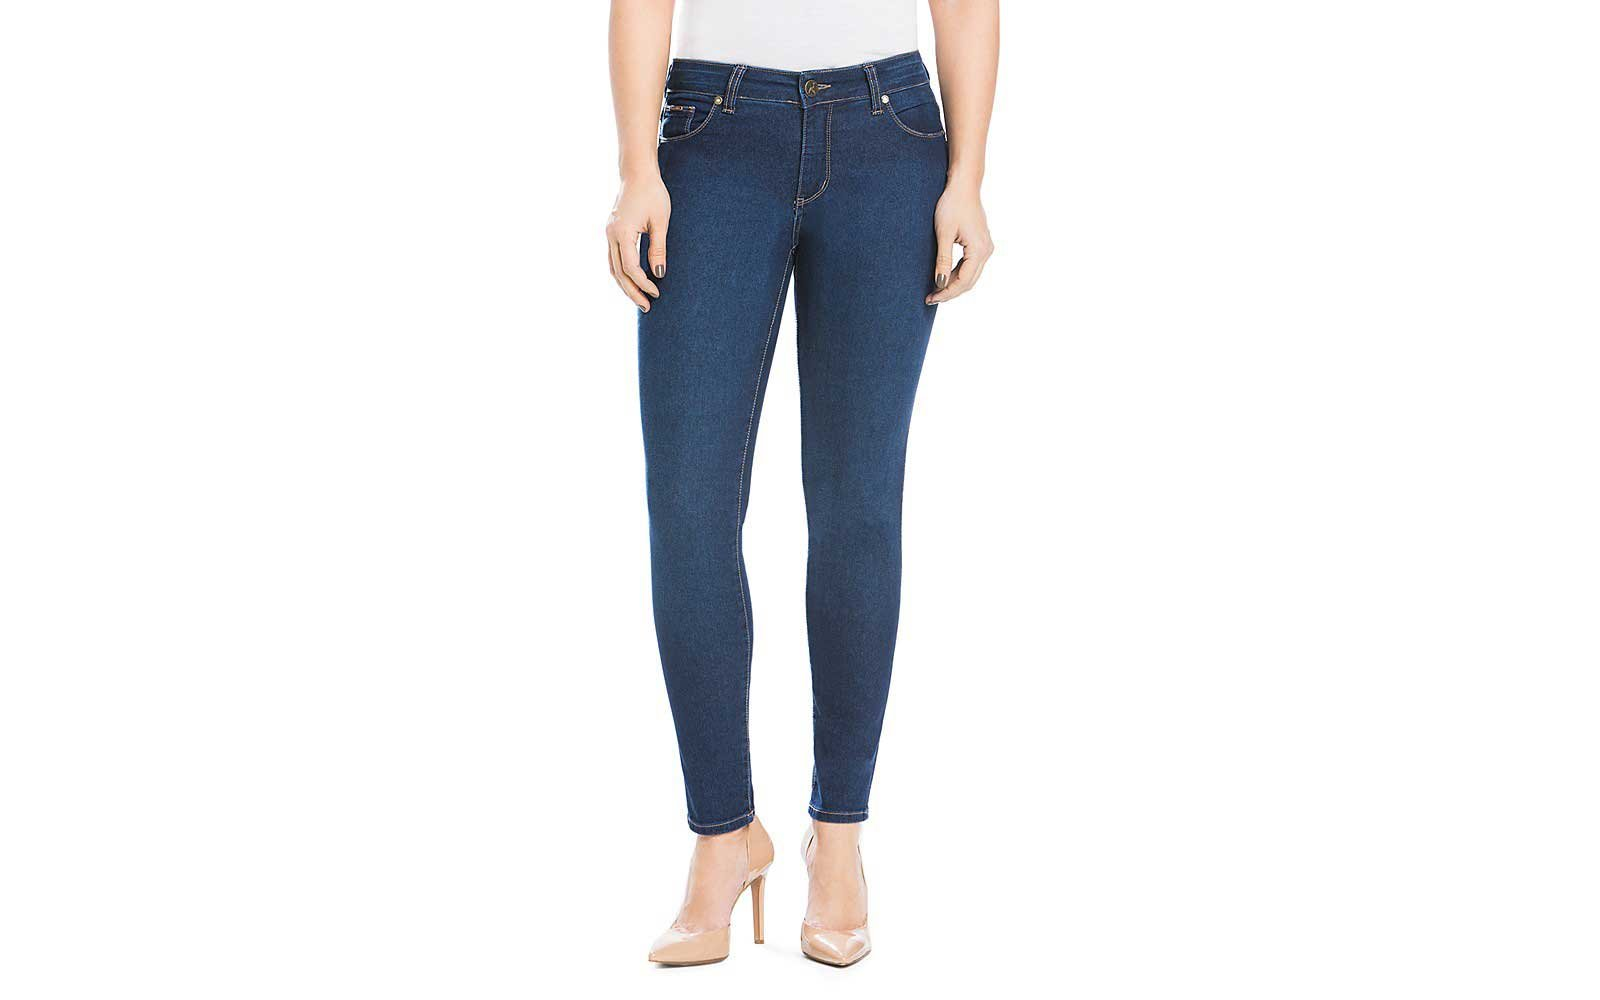 fde9134008 The Best Jeans for Travel